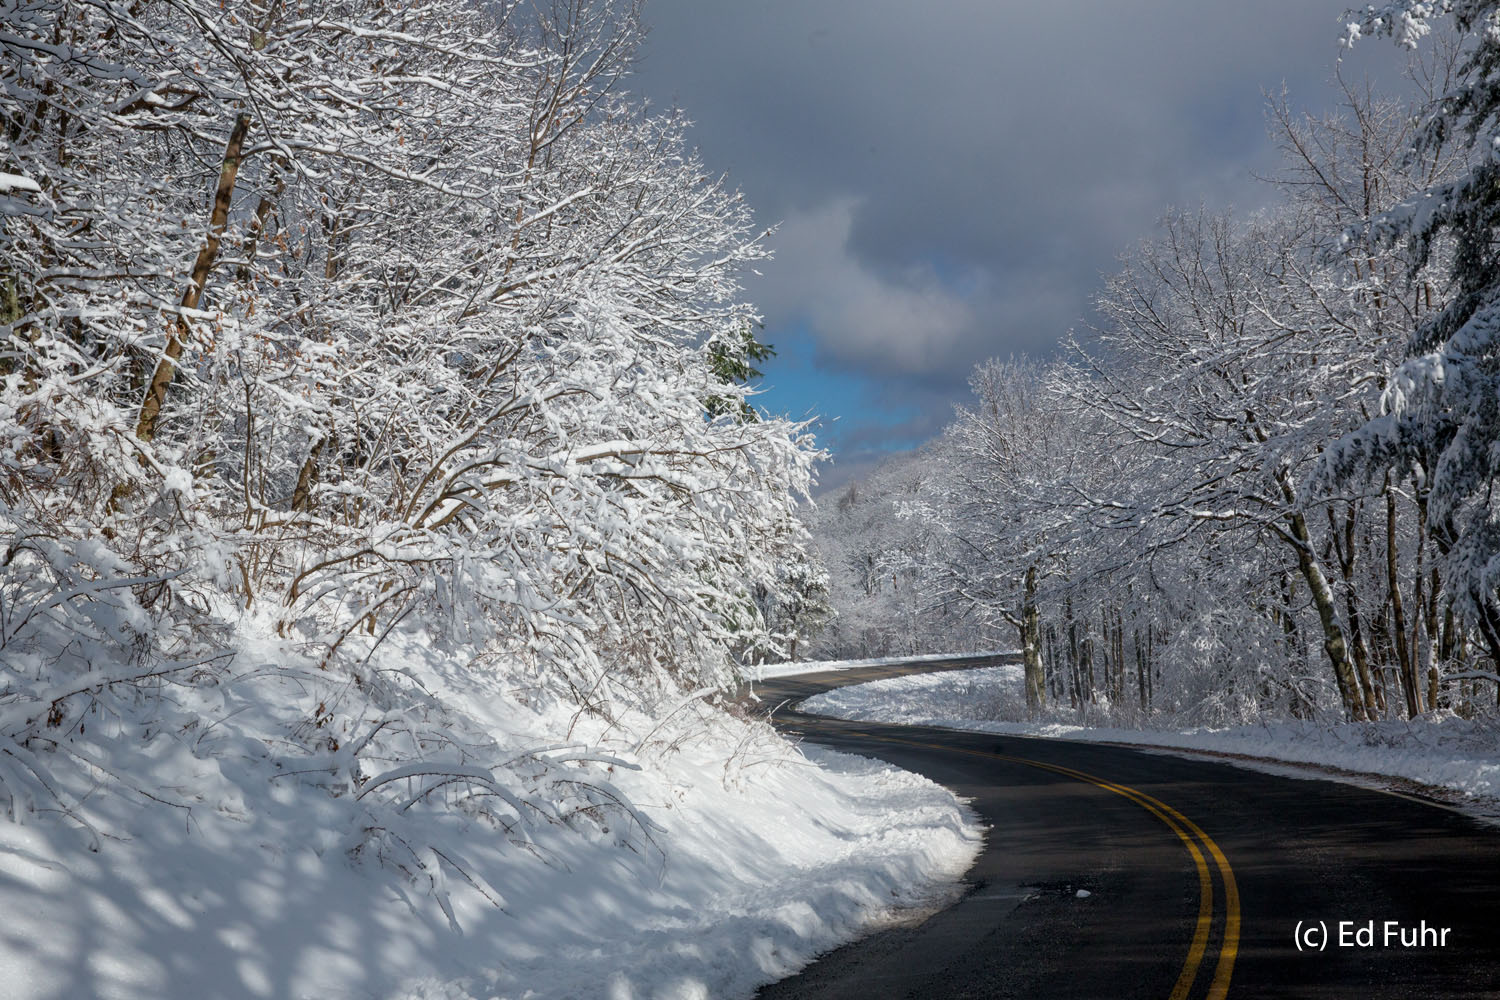 Solitude is not common on Skyline Drive except in winter when the only sounds are an occasional bird's call and the sound of...